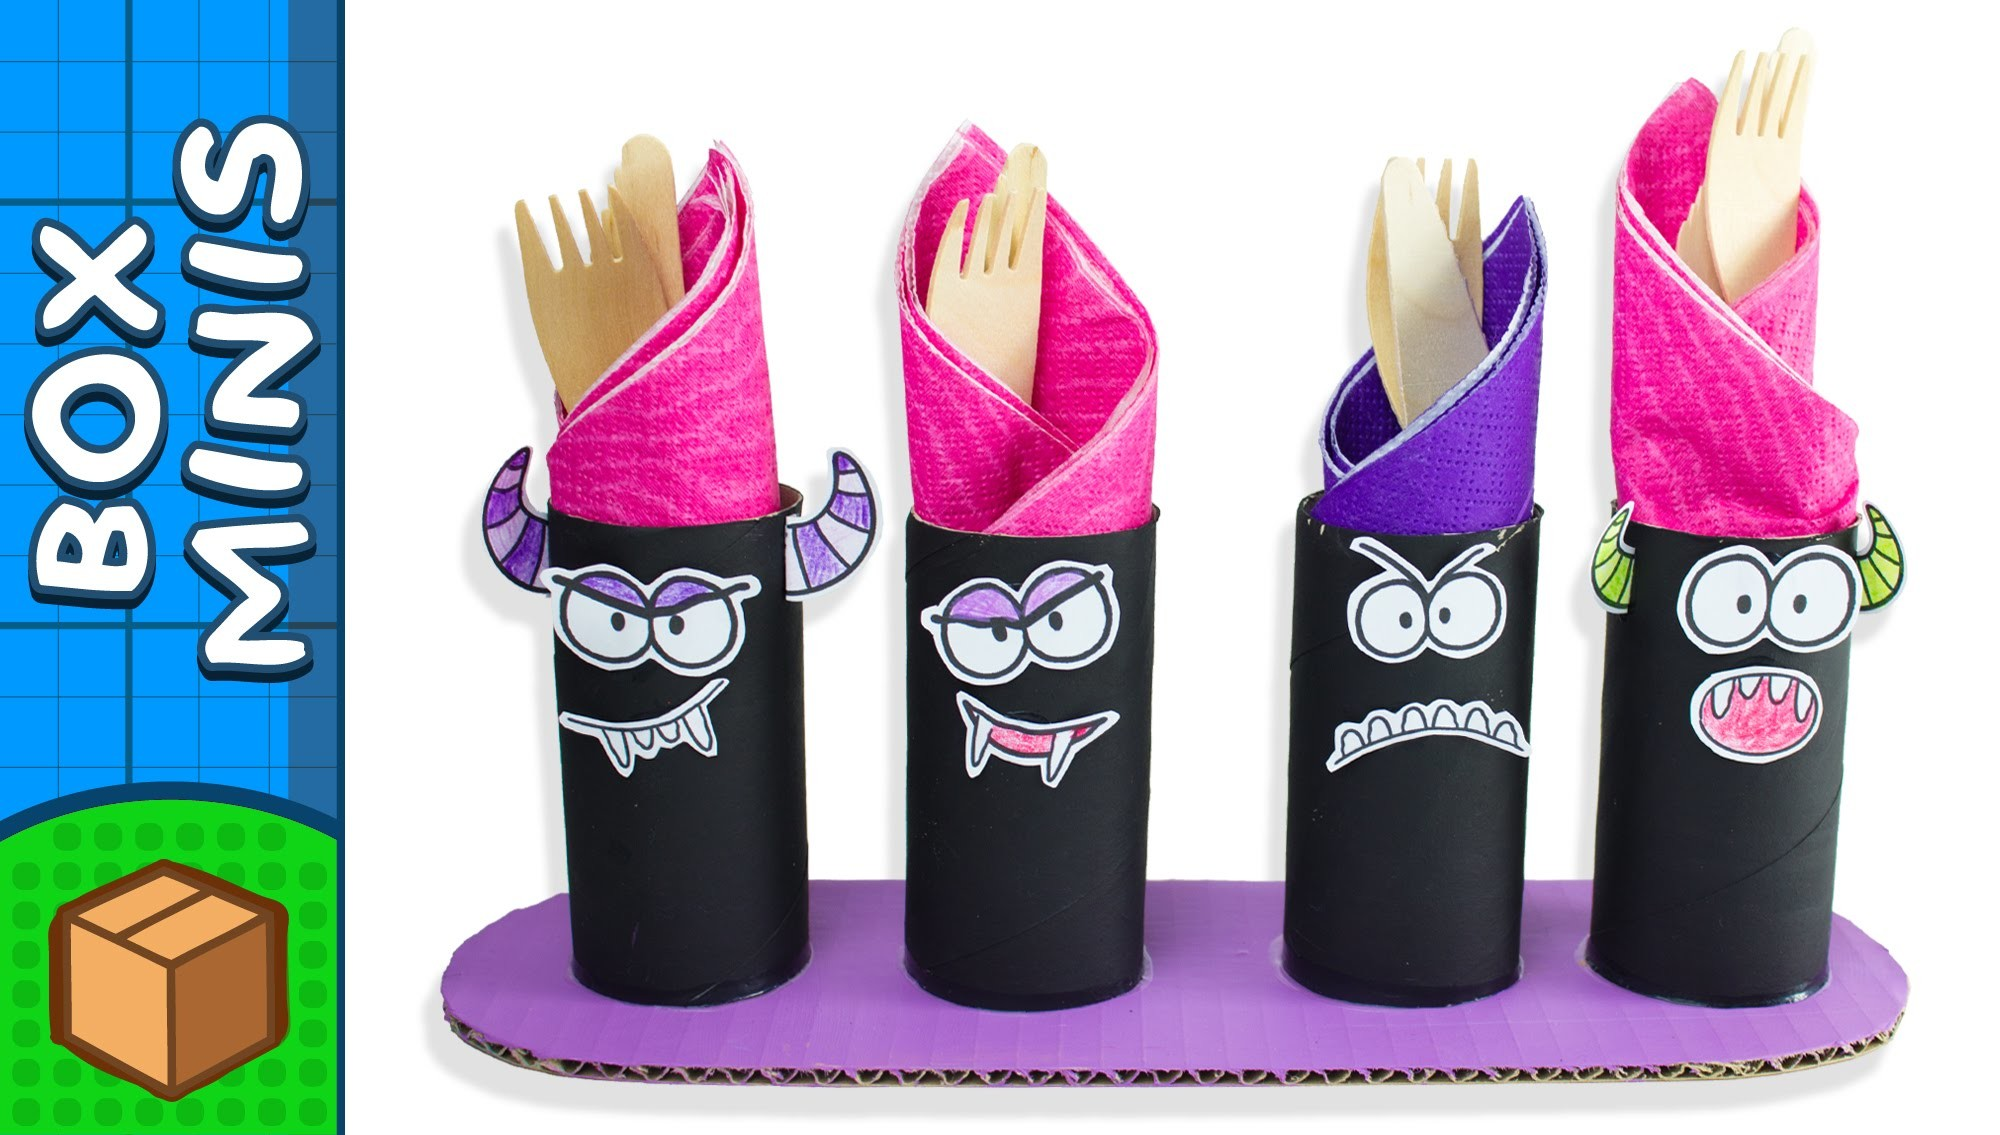 Toilet Roll Halloween Monsters - DIY Crafts Ideas For Kids | Box Minis on BoxYourself